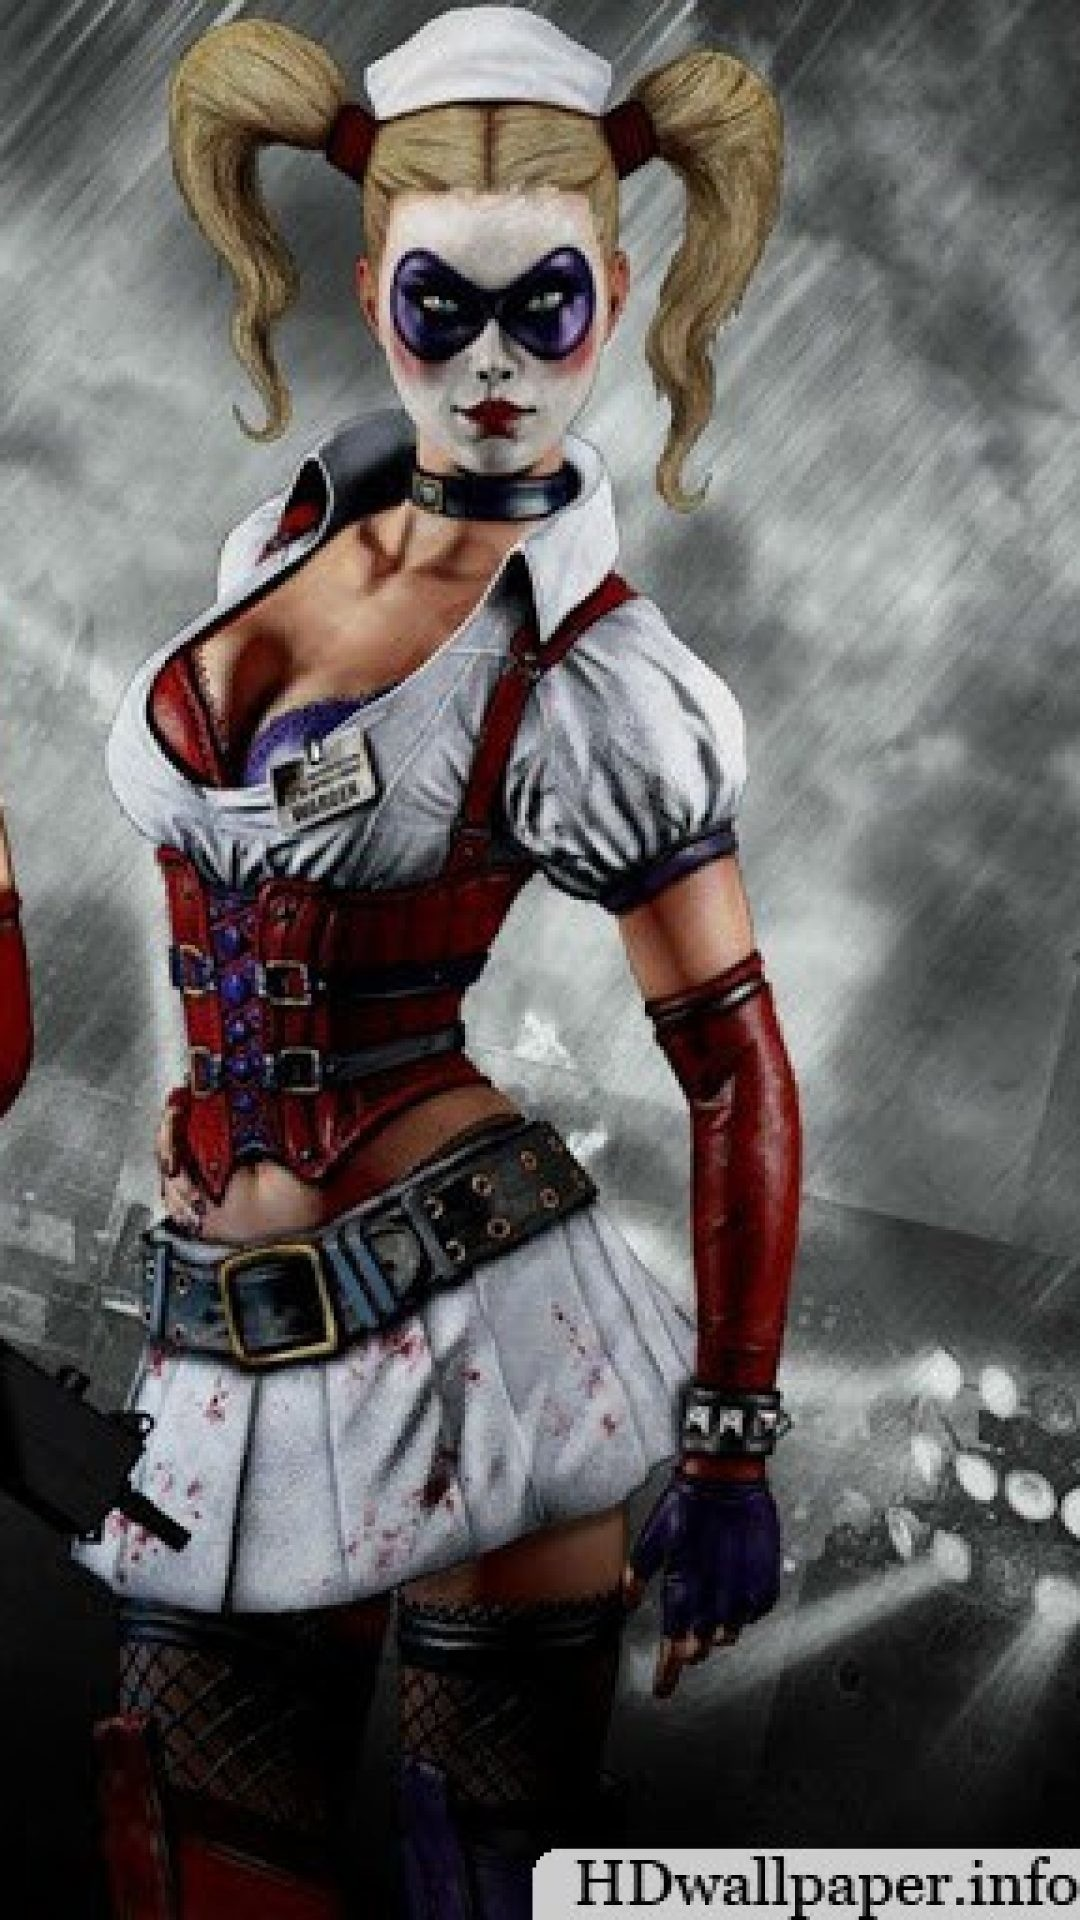 Harley quinn wallpaper hd 1080p 78 images - Harley quinn hd wallpapers for android ...